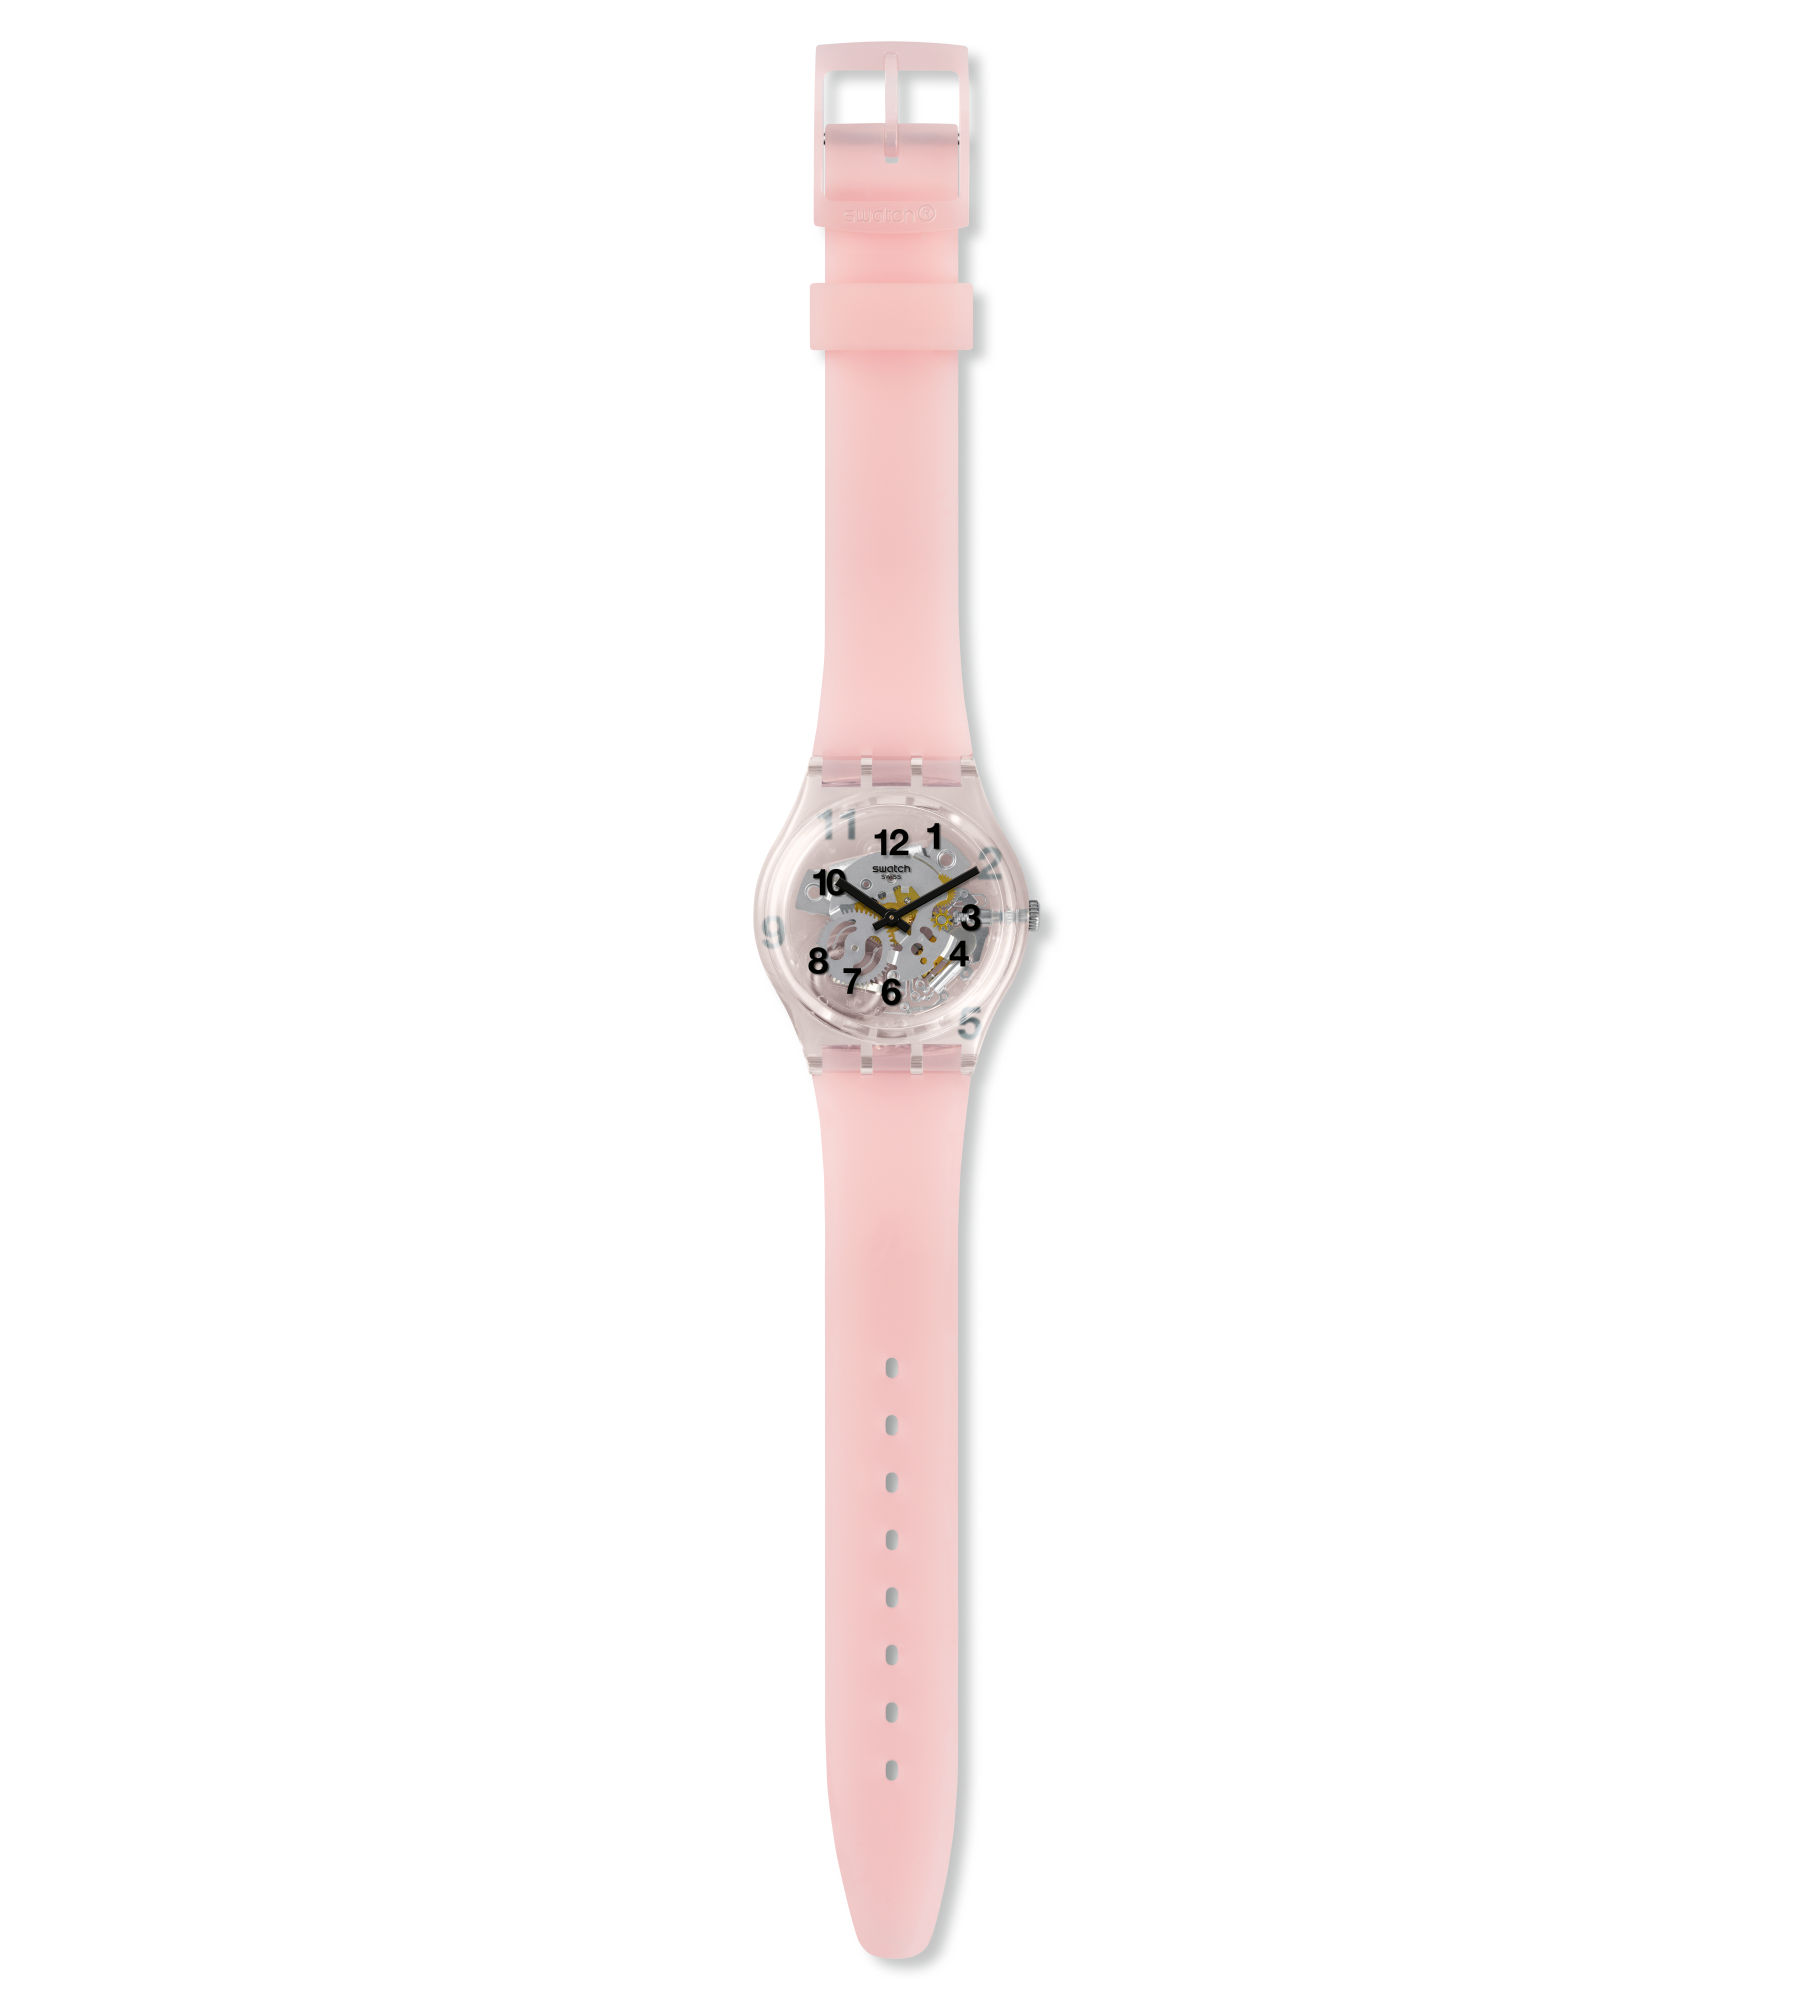 SWATCH WOMAN WATCH PINK BOARD REF. GP158